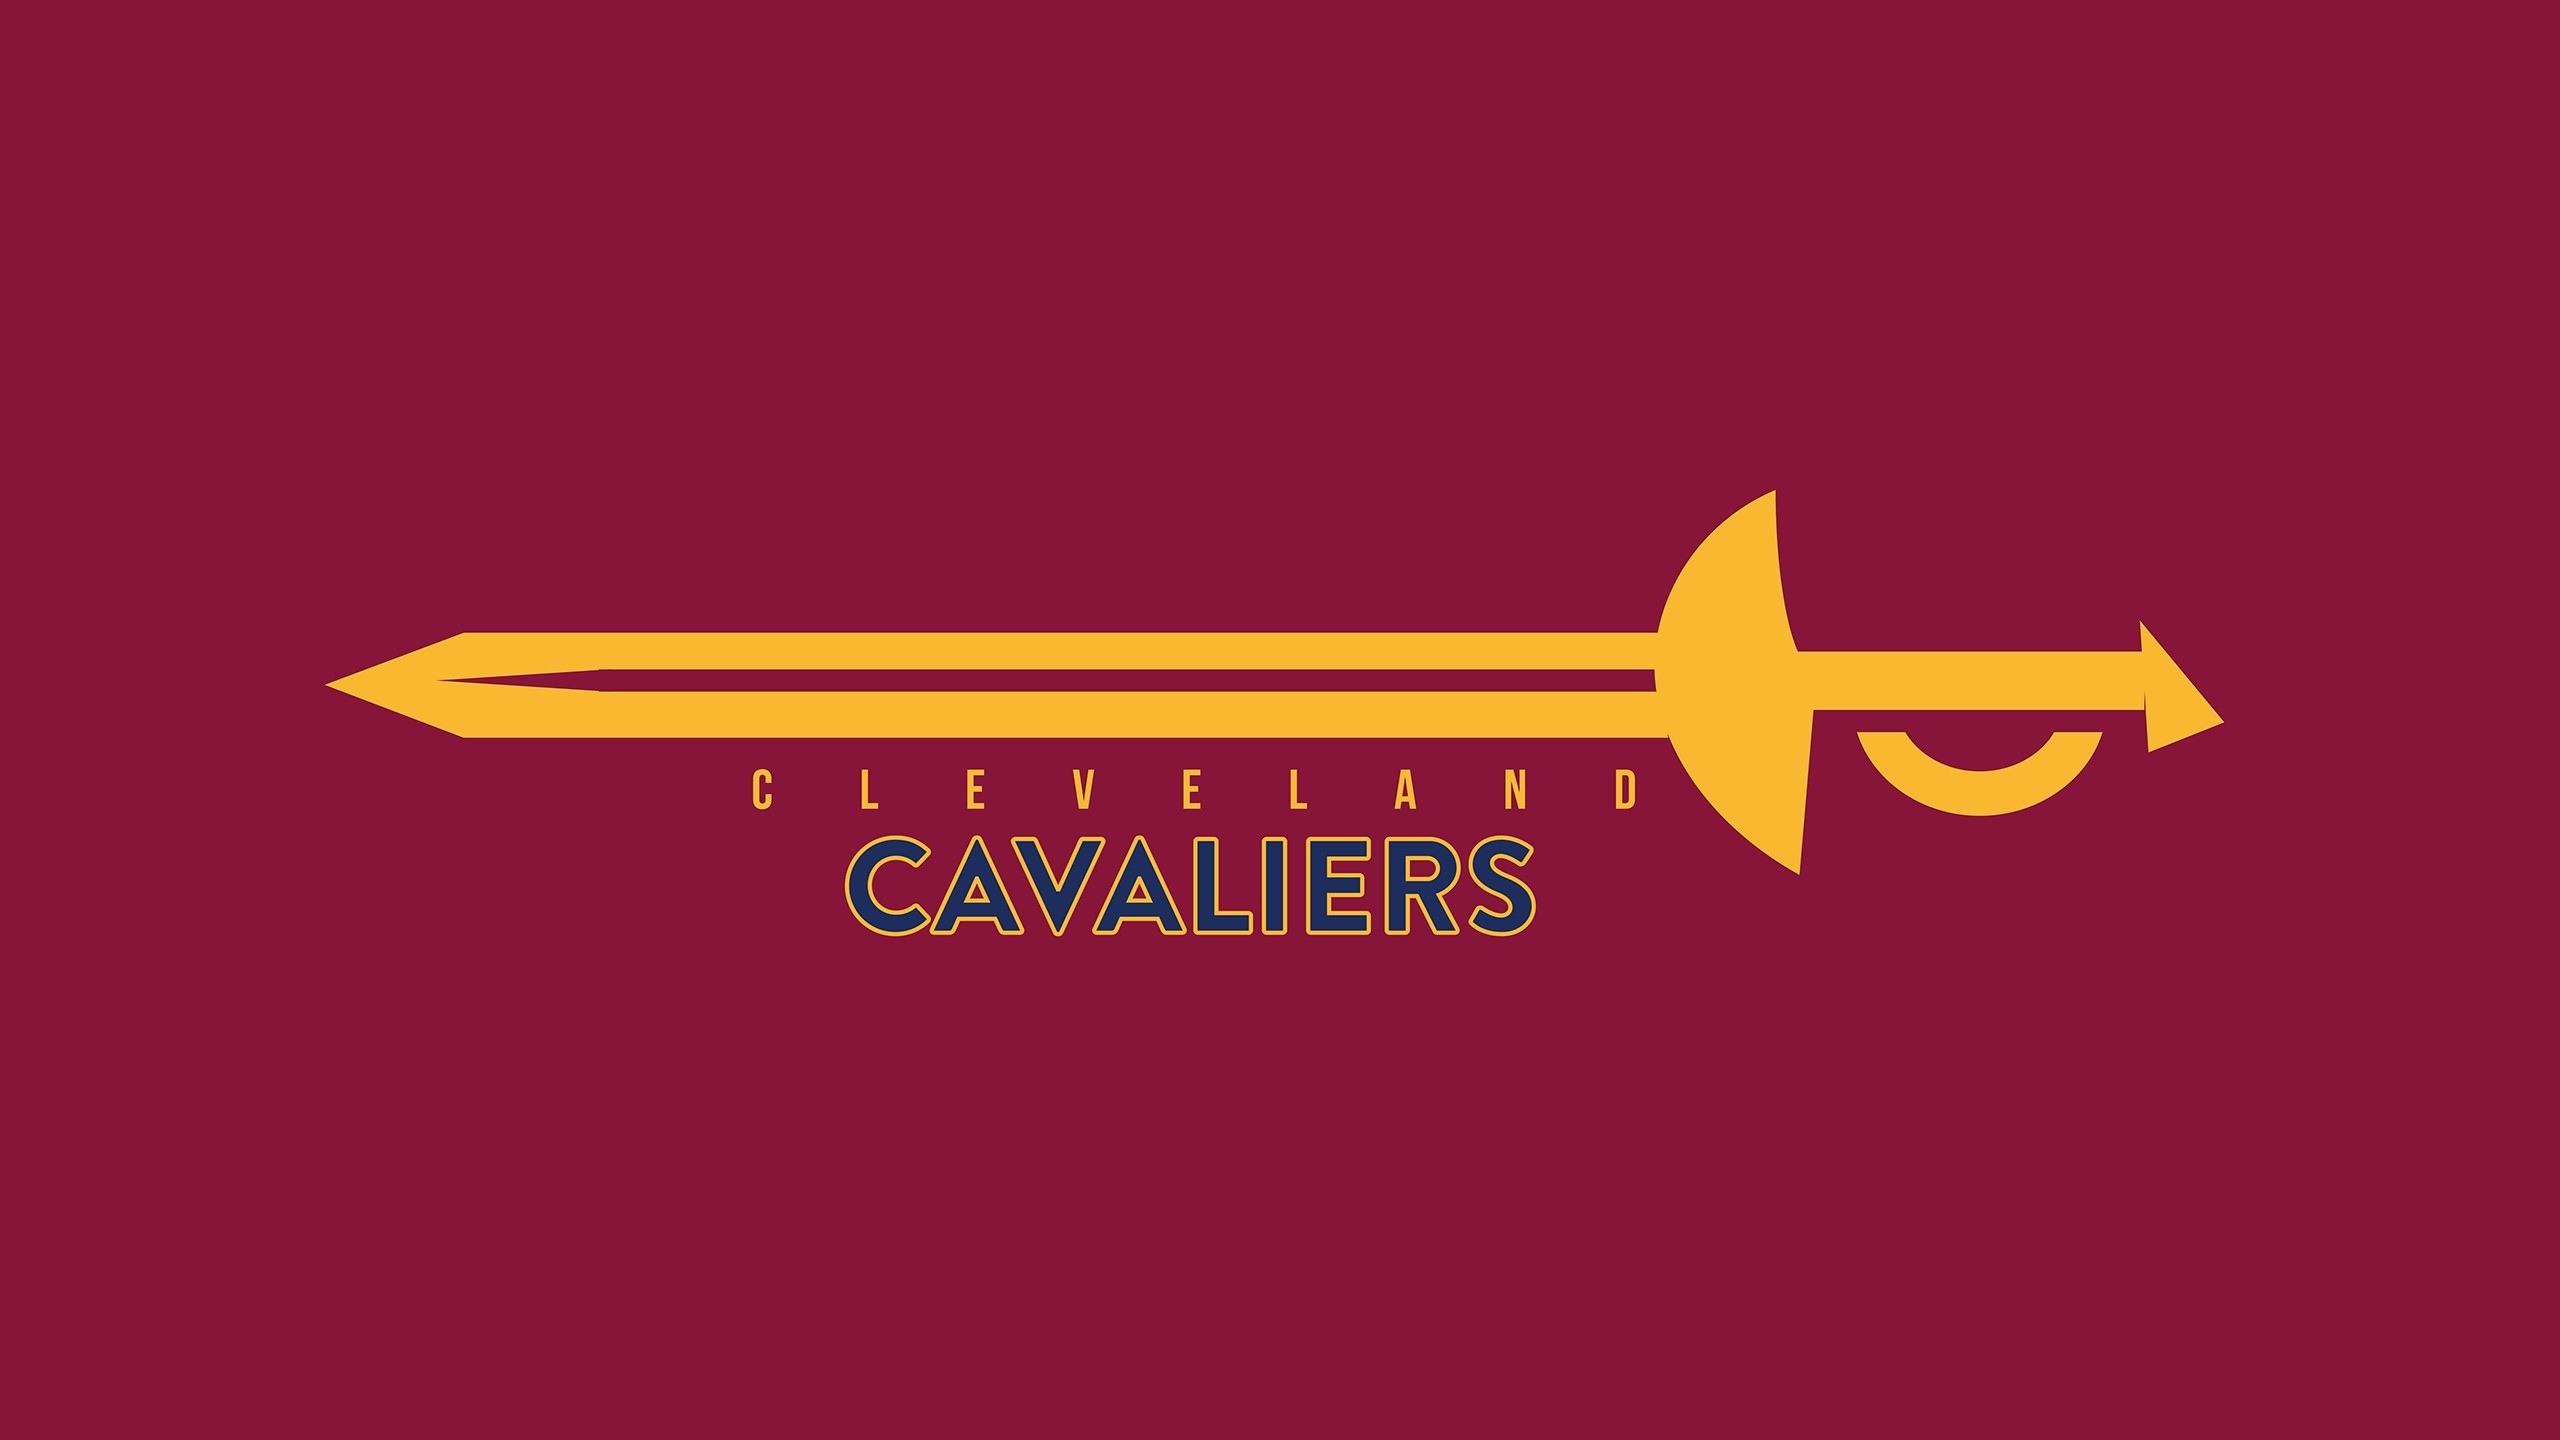 HD Widescreen Wallpapers – cleveland cavaliers pic, 116 kB – Albany  Robertson